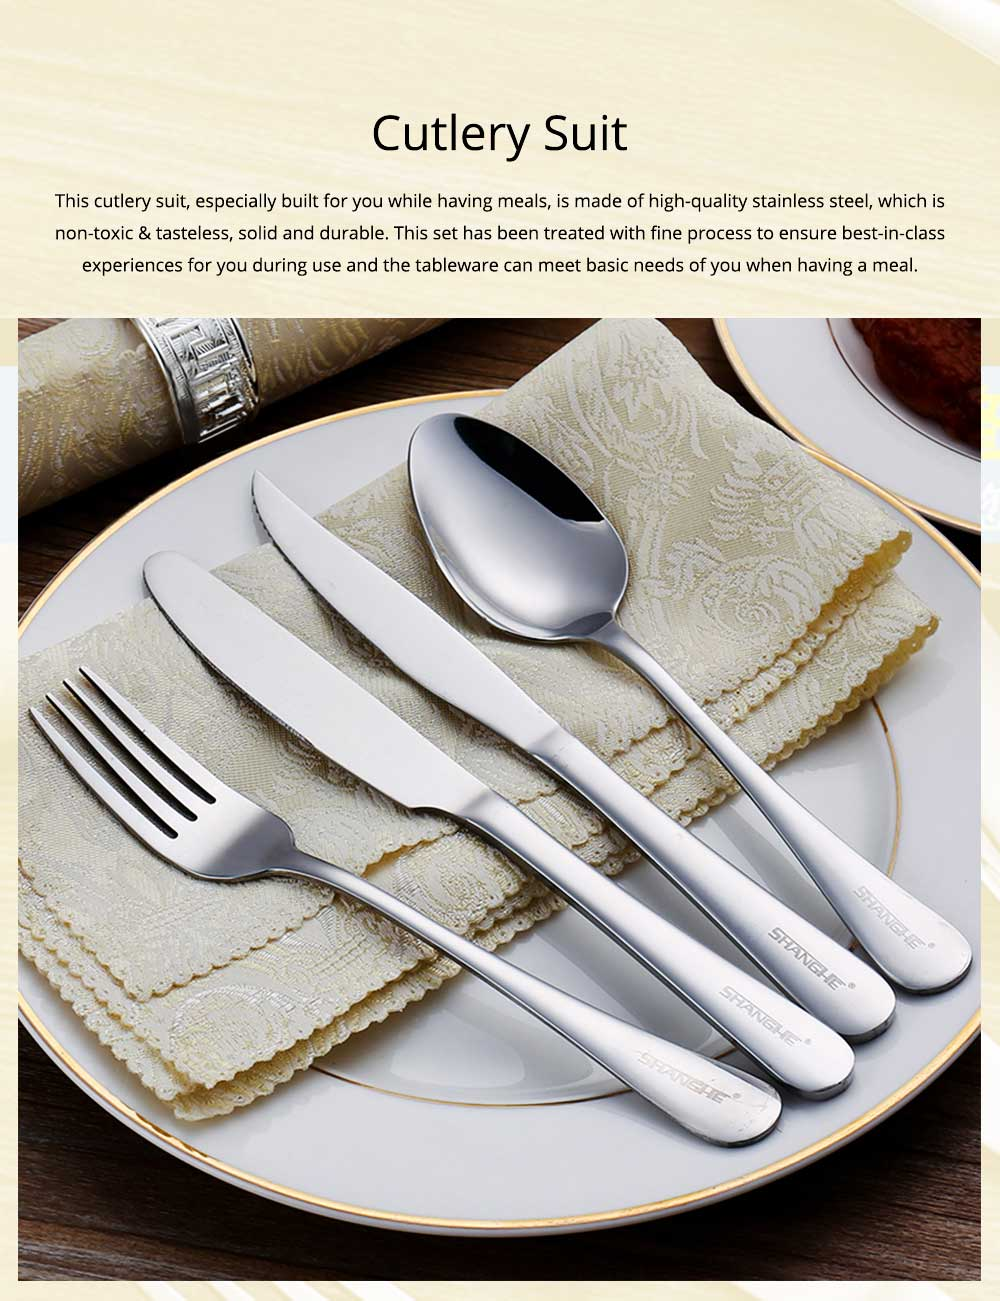 Simple Elegant Stainless Steel Knife Fork Spoon Cutlery Suit, Polishing Smooth Comfortable Tableware 2PCS 3PCS Set 0